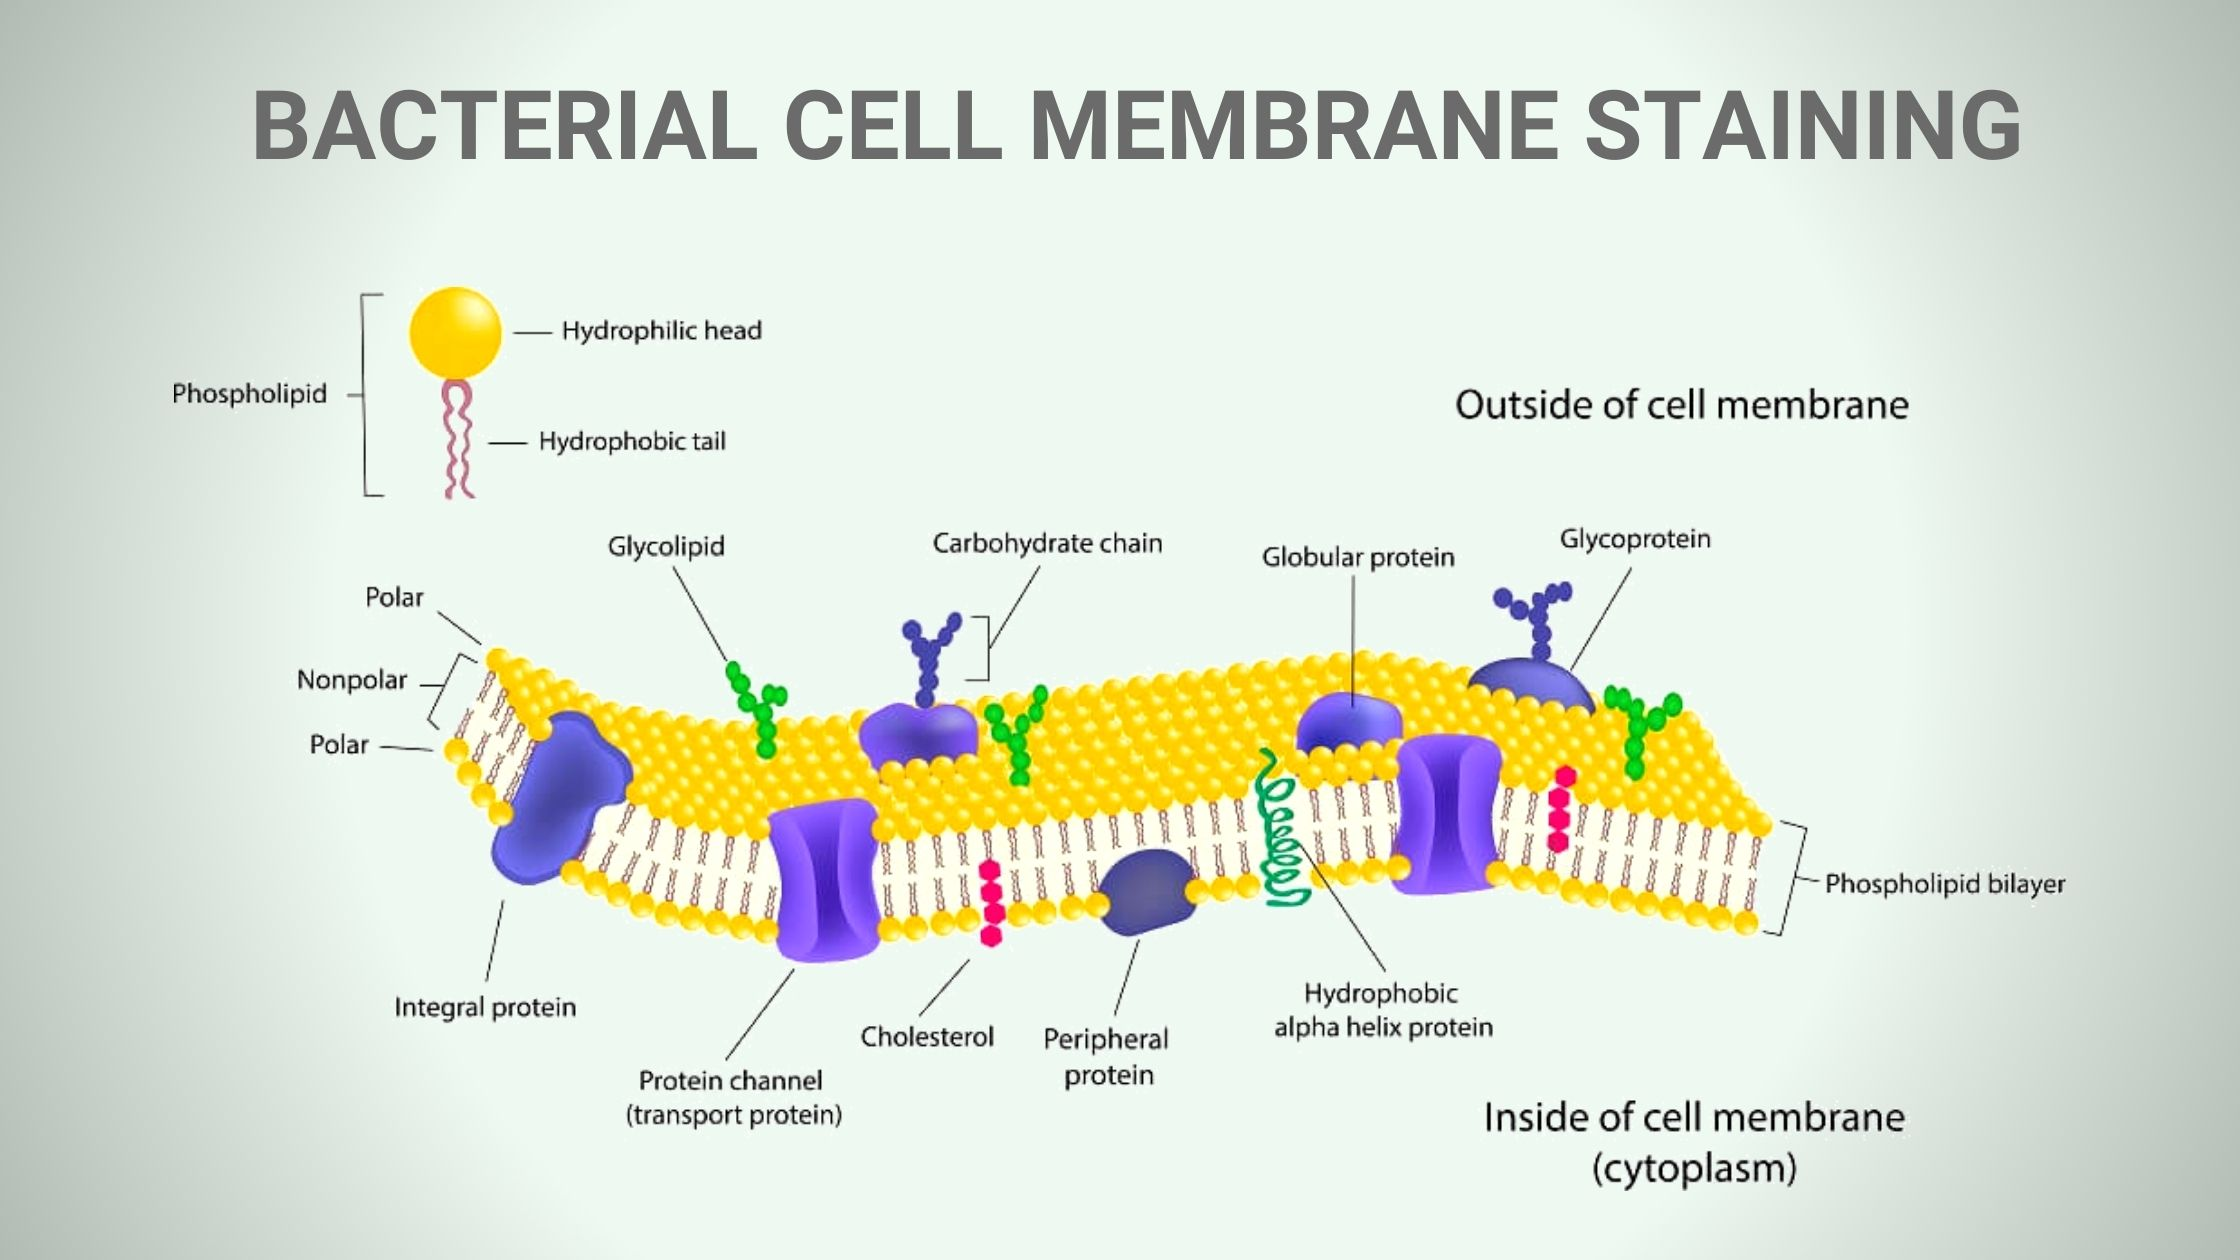 BACTERIAL CELL MEMBRANE STAINING